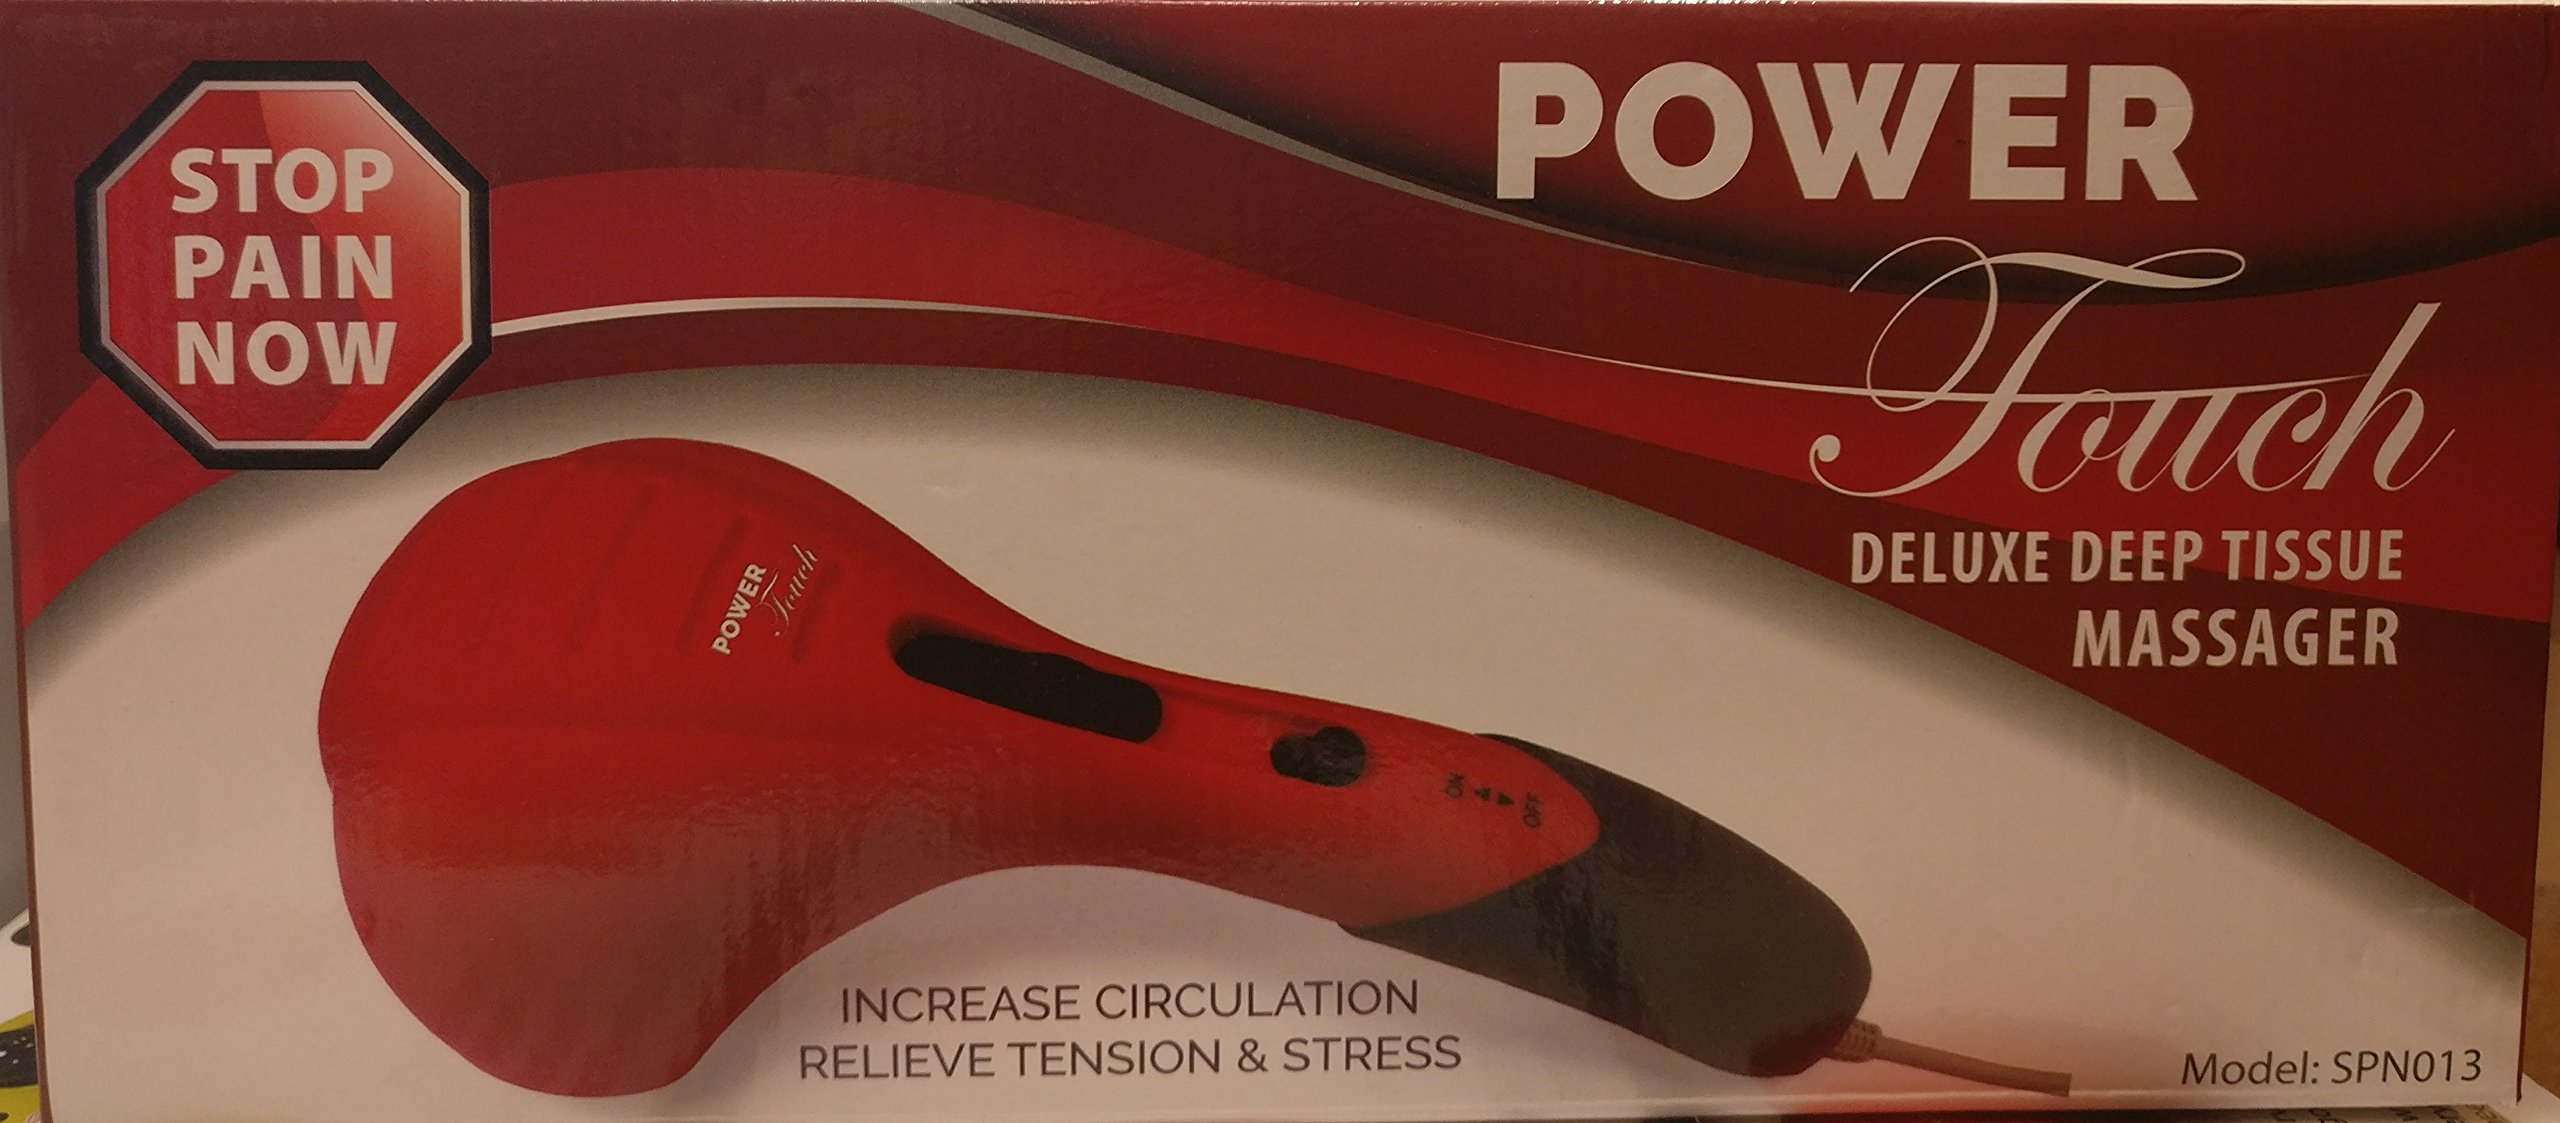 Power Touch Deluxe Deep Tissue Massager Red